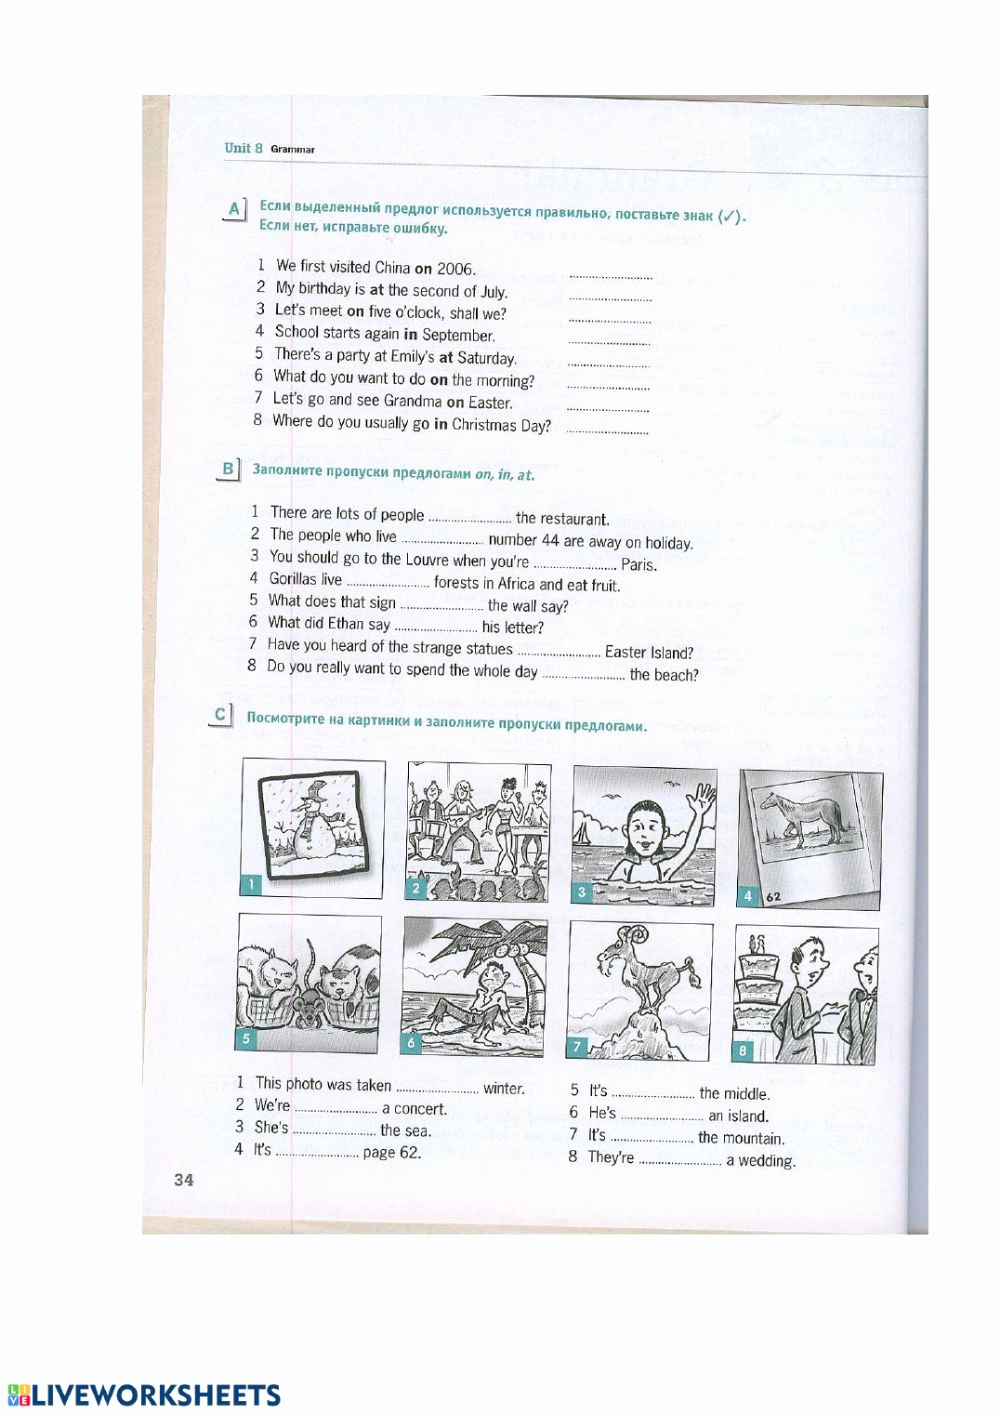 Prepositions Worksheets Middle School Awesome 20 Prepositions Worksheets Middle School